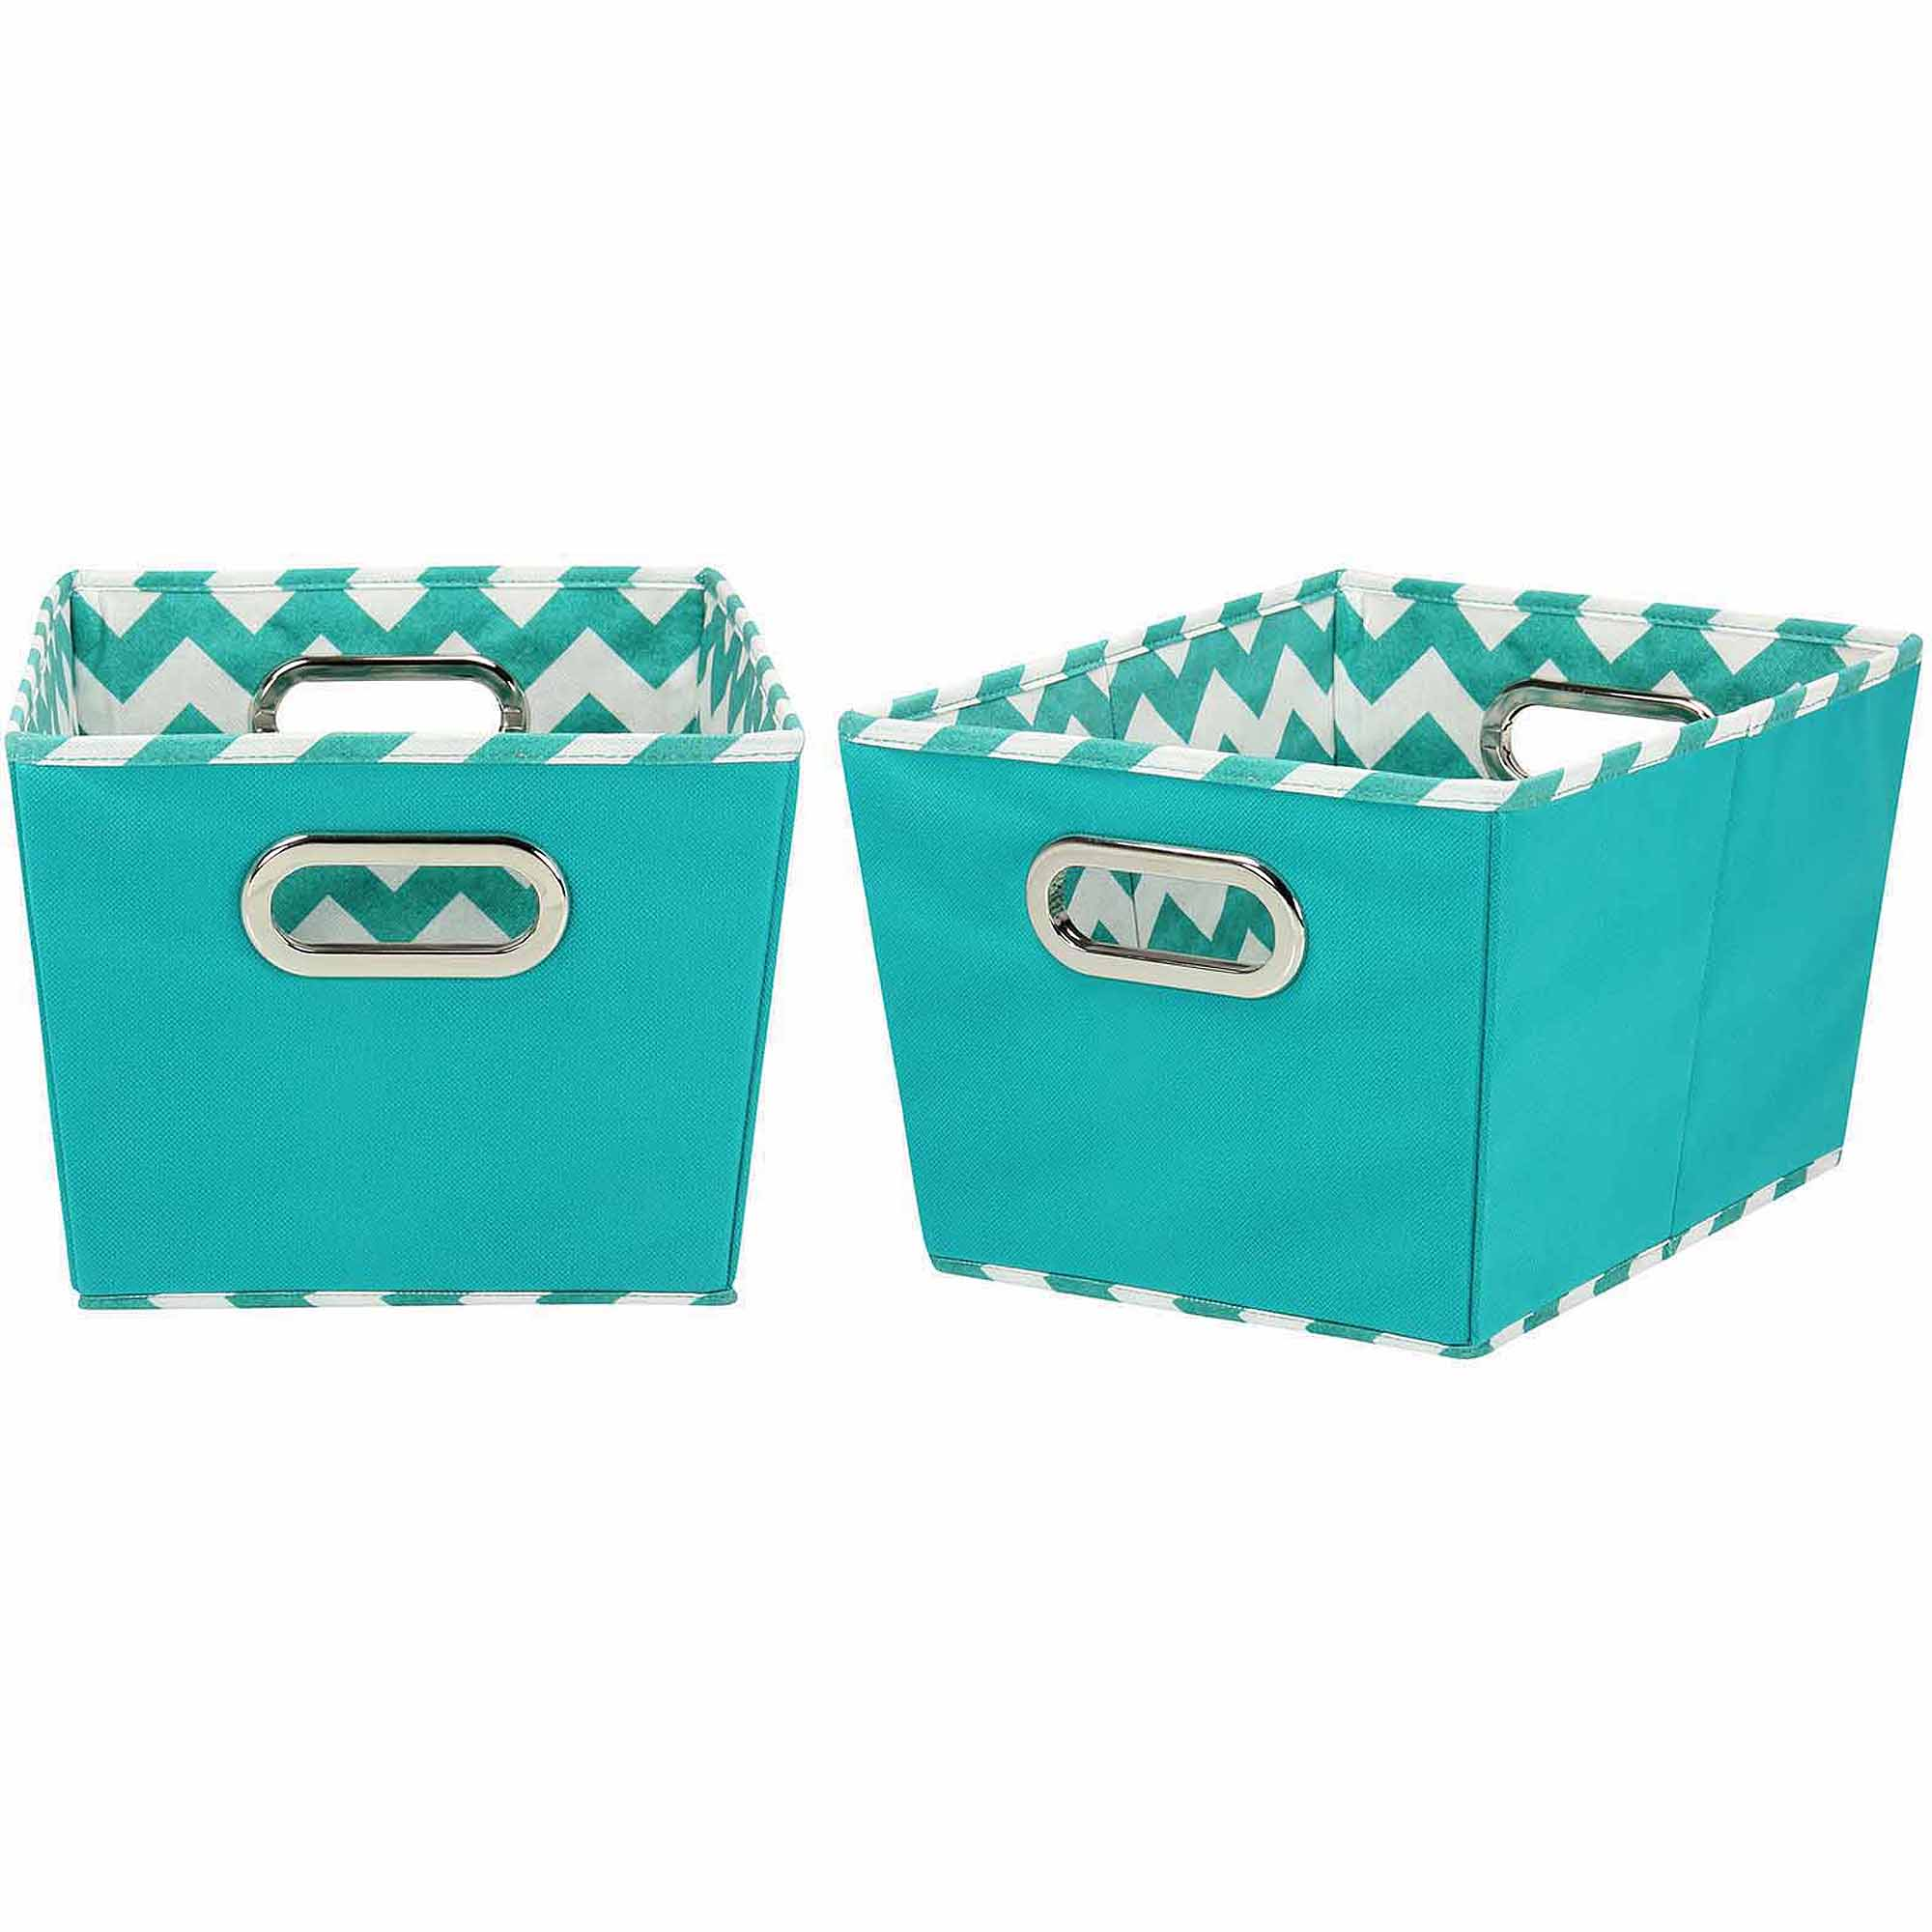 Household Essentials Small Decorative Storage Bins, 2pk, Aqua and Chevron